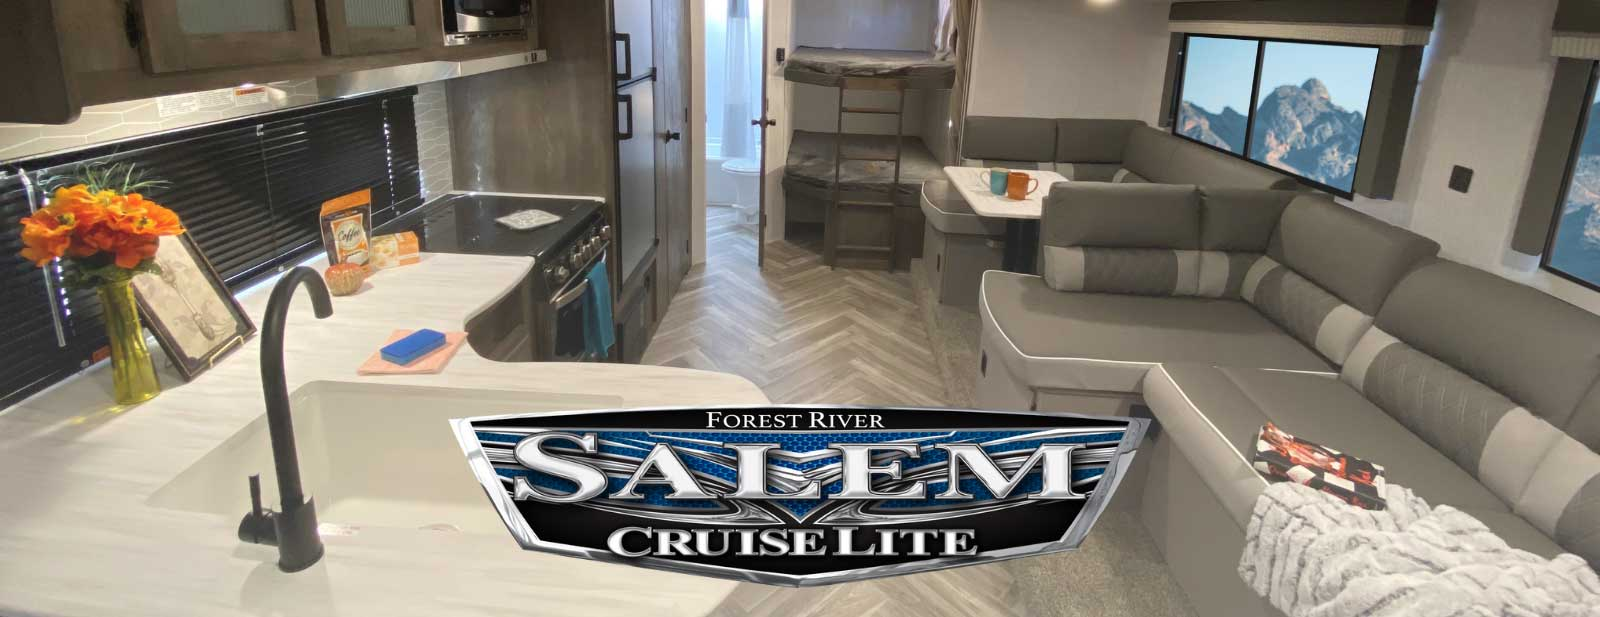 Cruise Lite West Forest River Rv Manufacturer Of